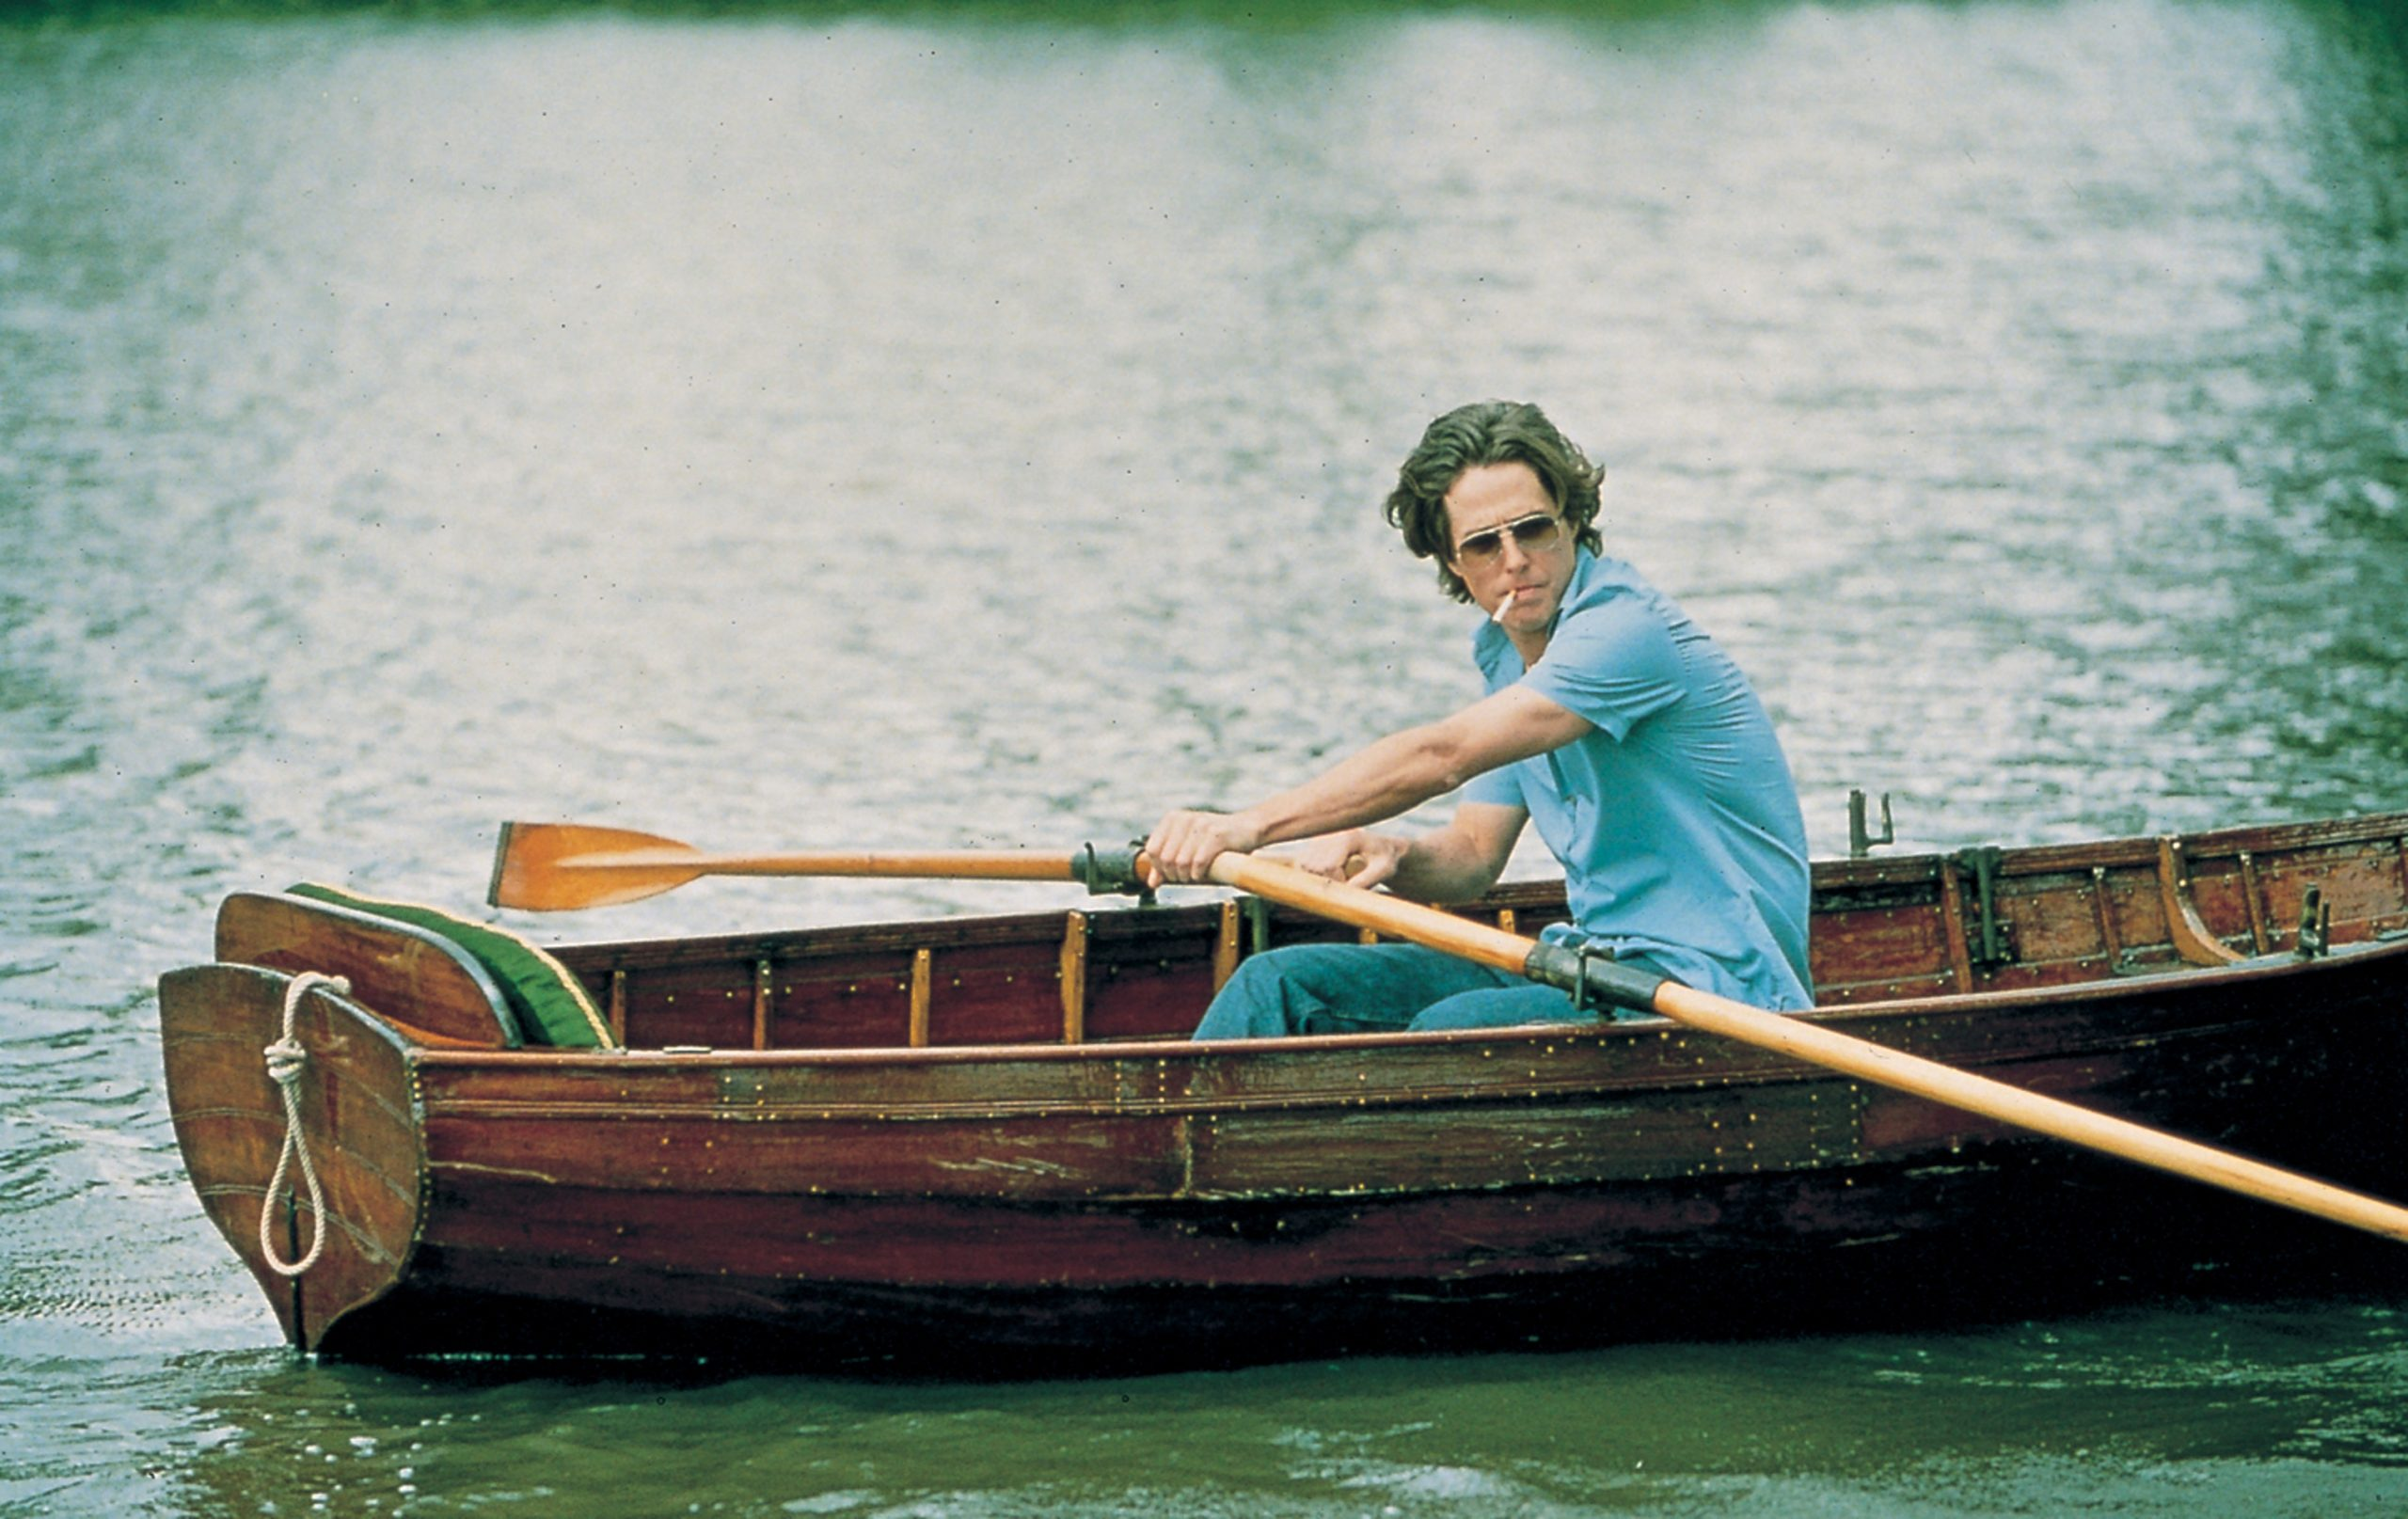 An image from Bridget Jones's Diary showing Daniel rowing a boat